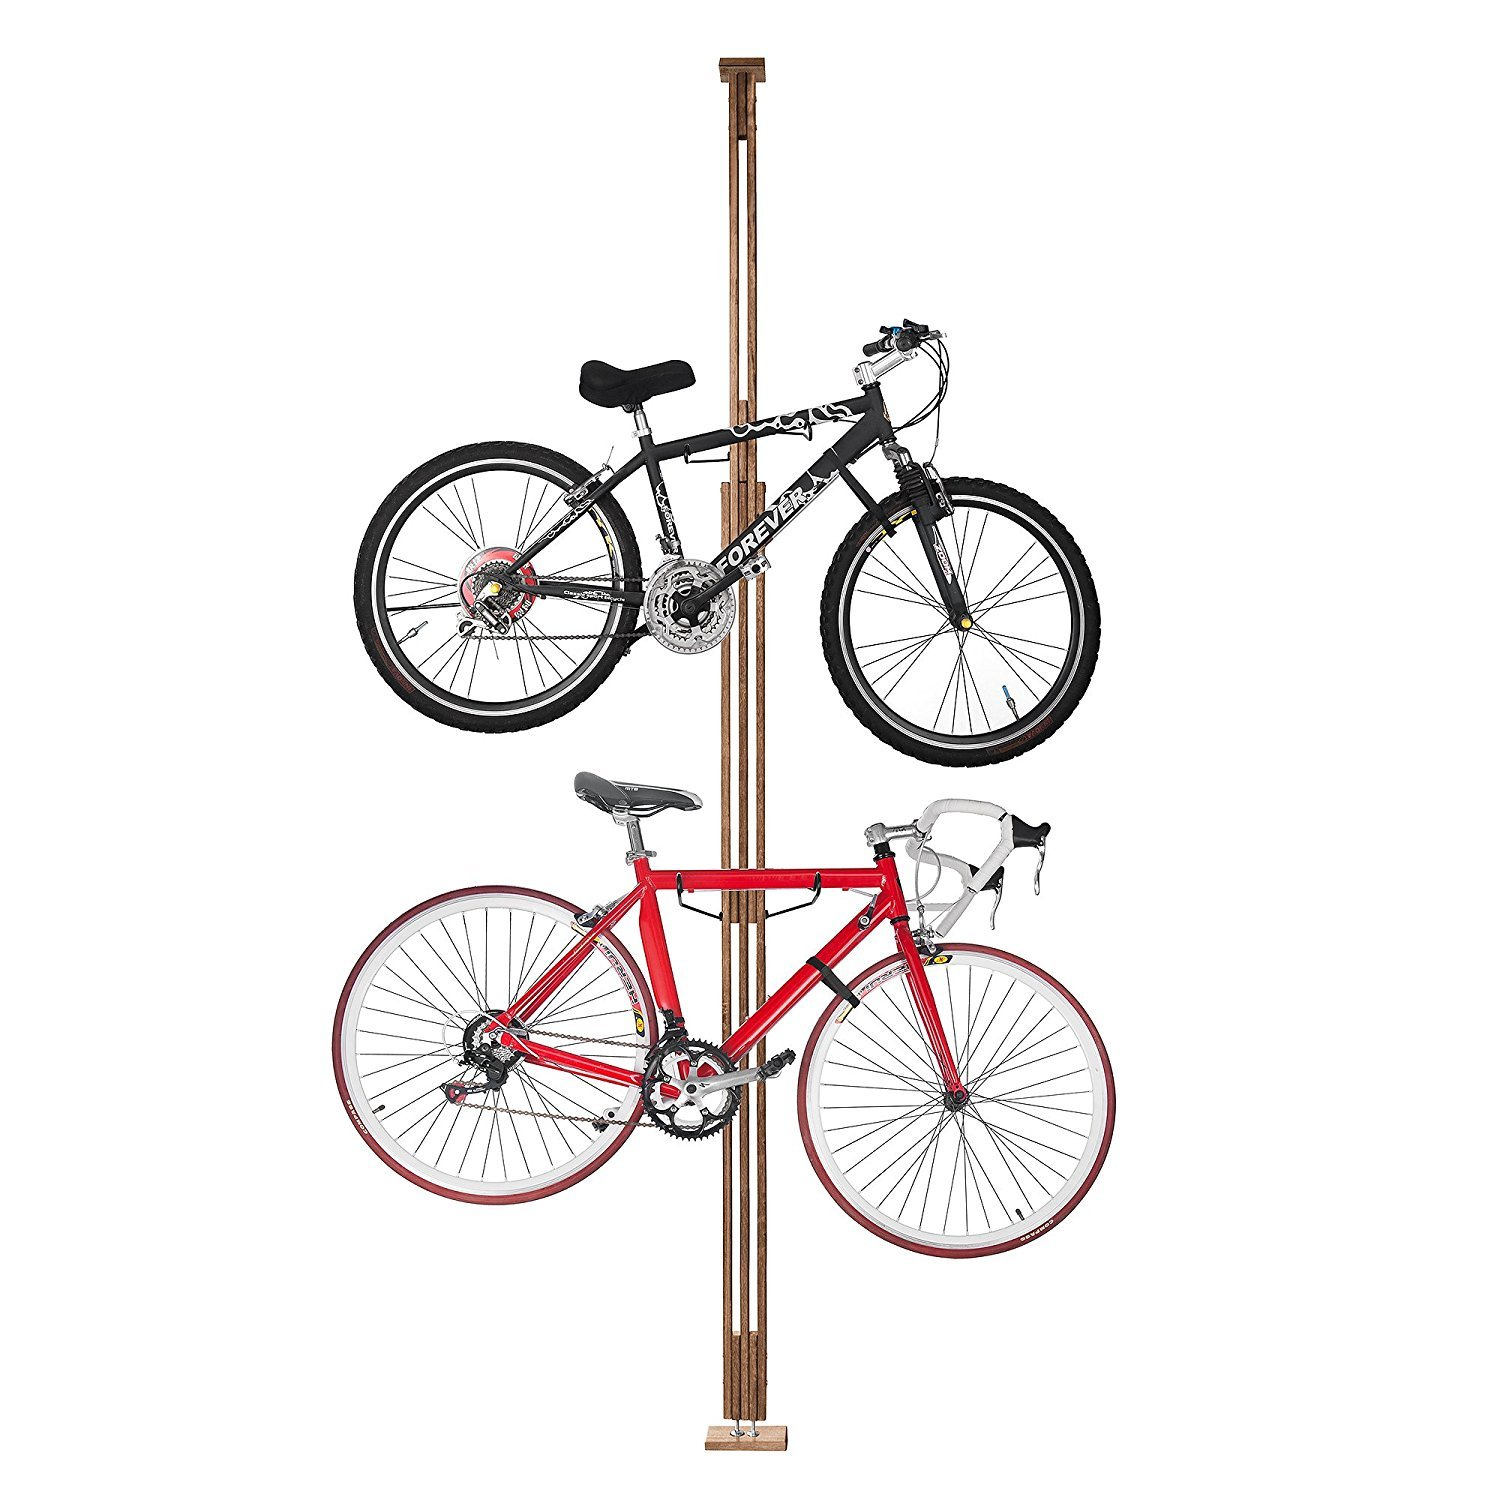 2021 RAD Cycle Woody Bike Stand Bicycle Rack Storage Display Holds Two Bicycles RAD Cycle Products 2021 Woody Bike Rack